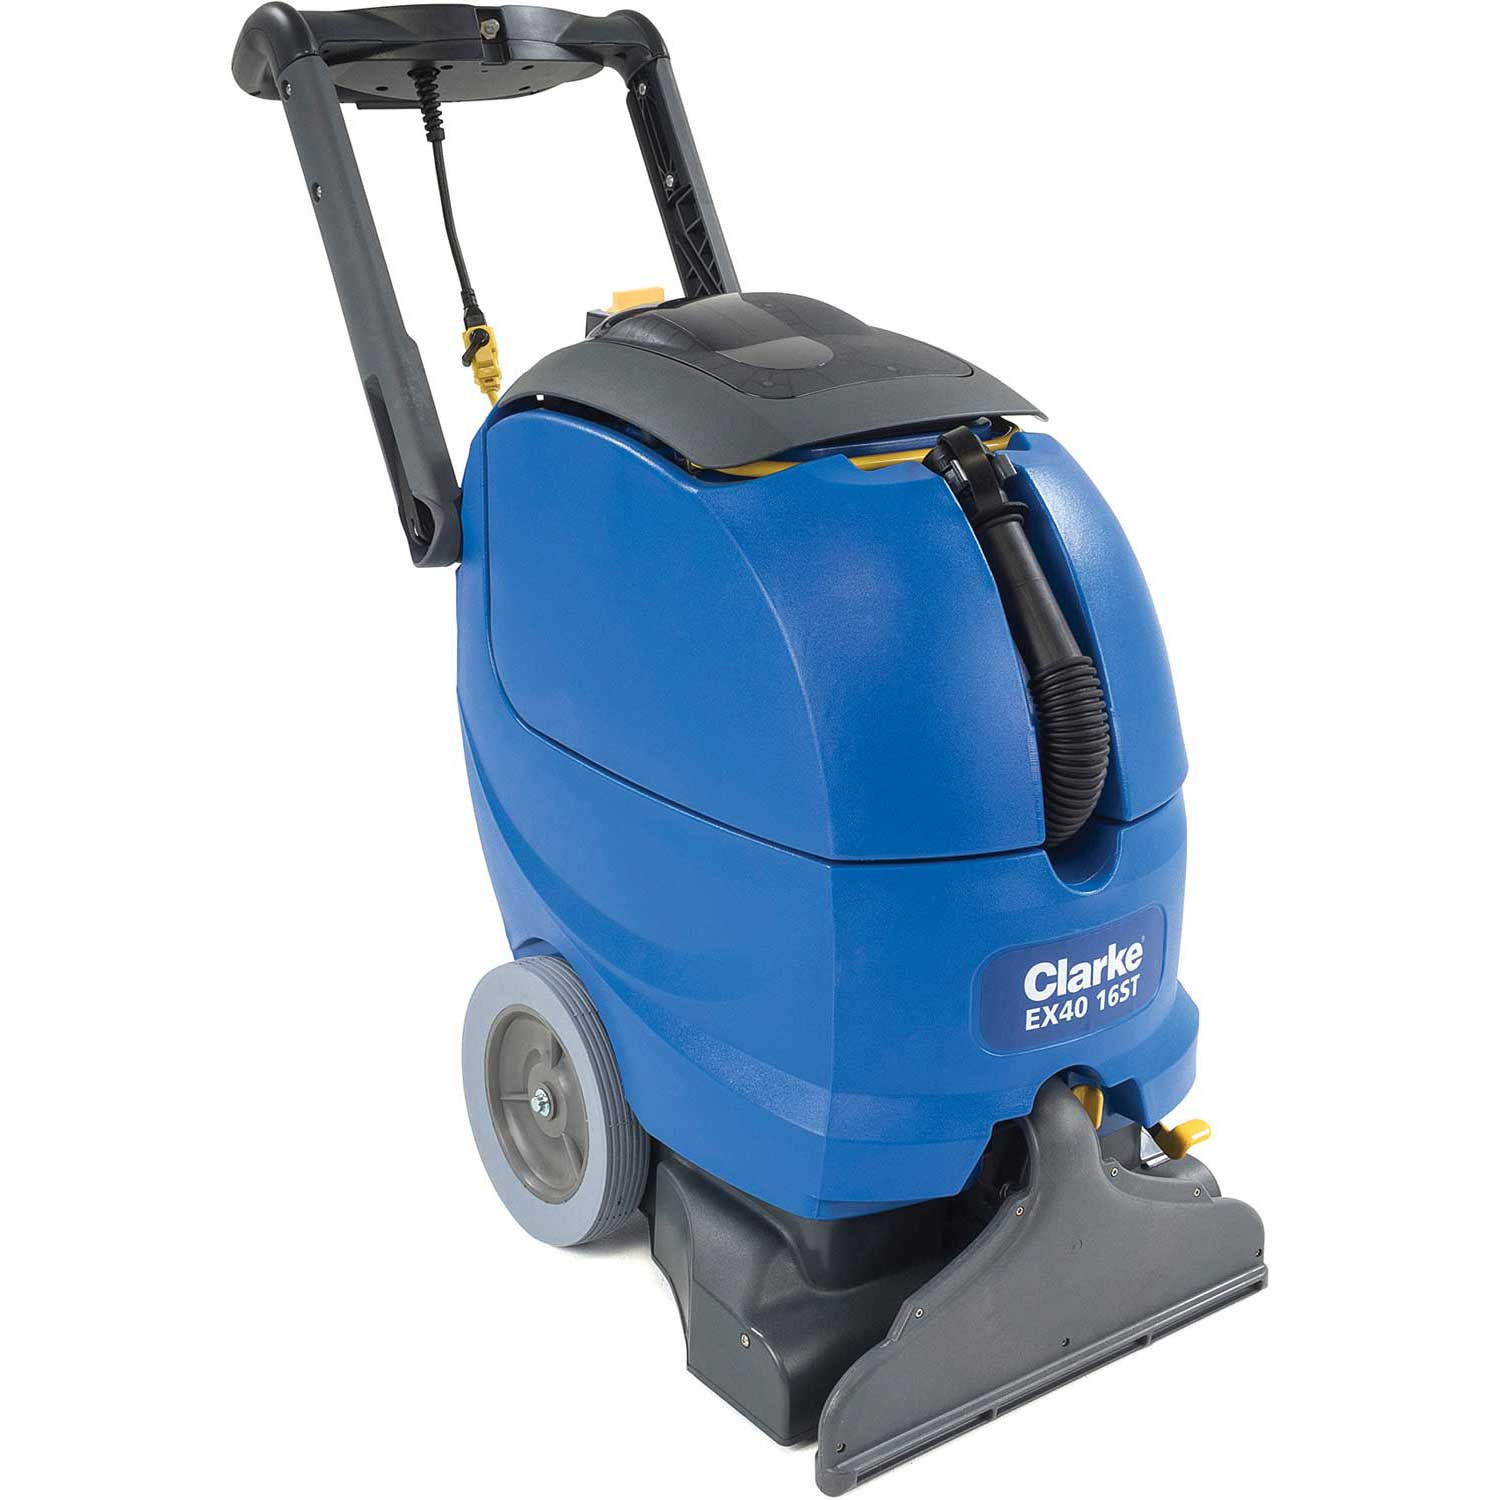 Clarke 174 Ex40 16st Self Contained Carpet Scrubbing